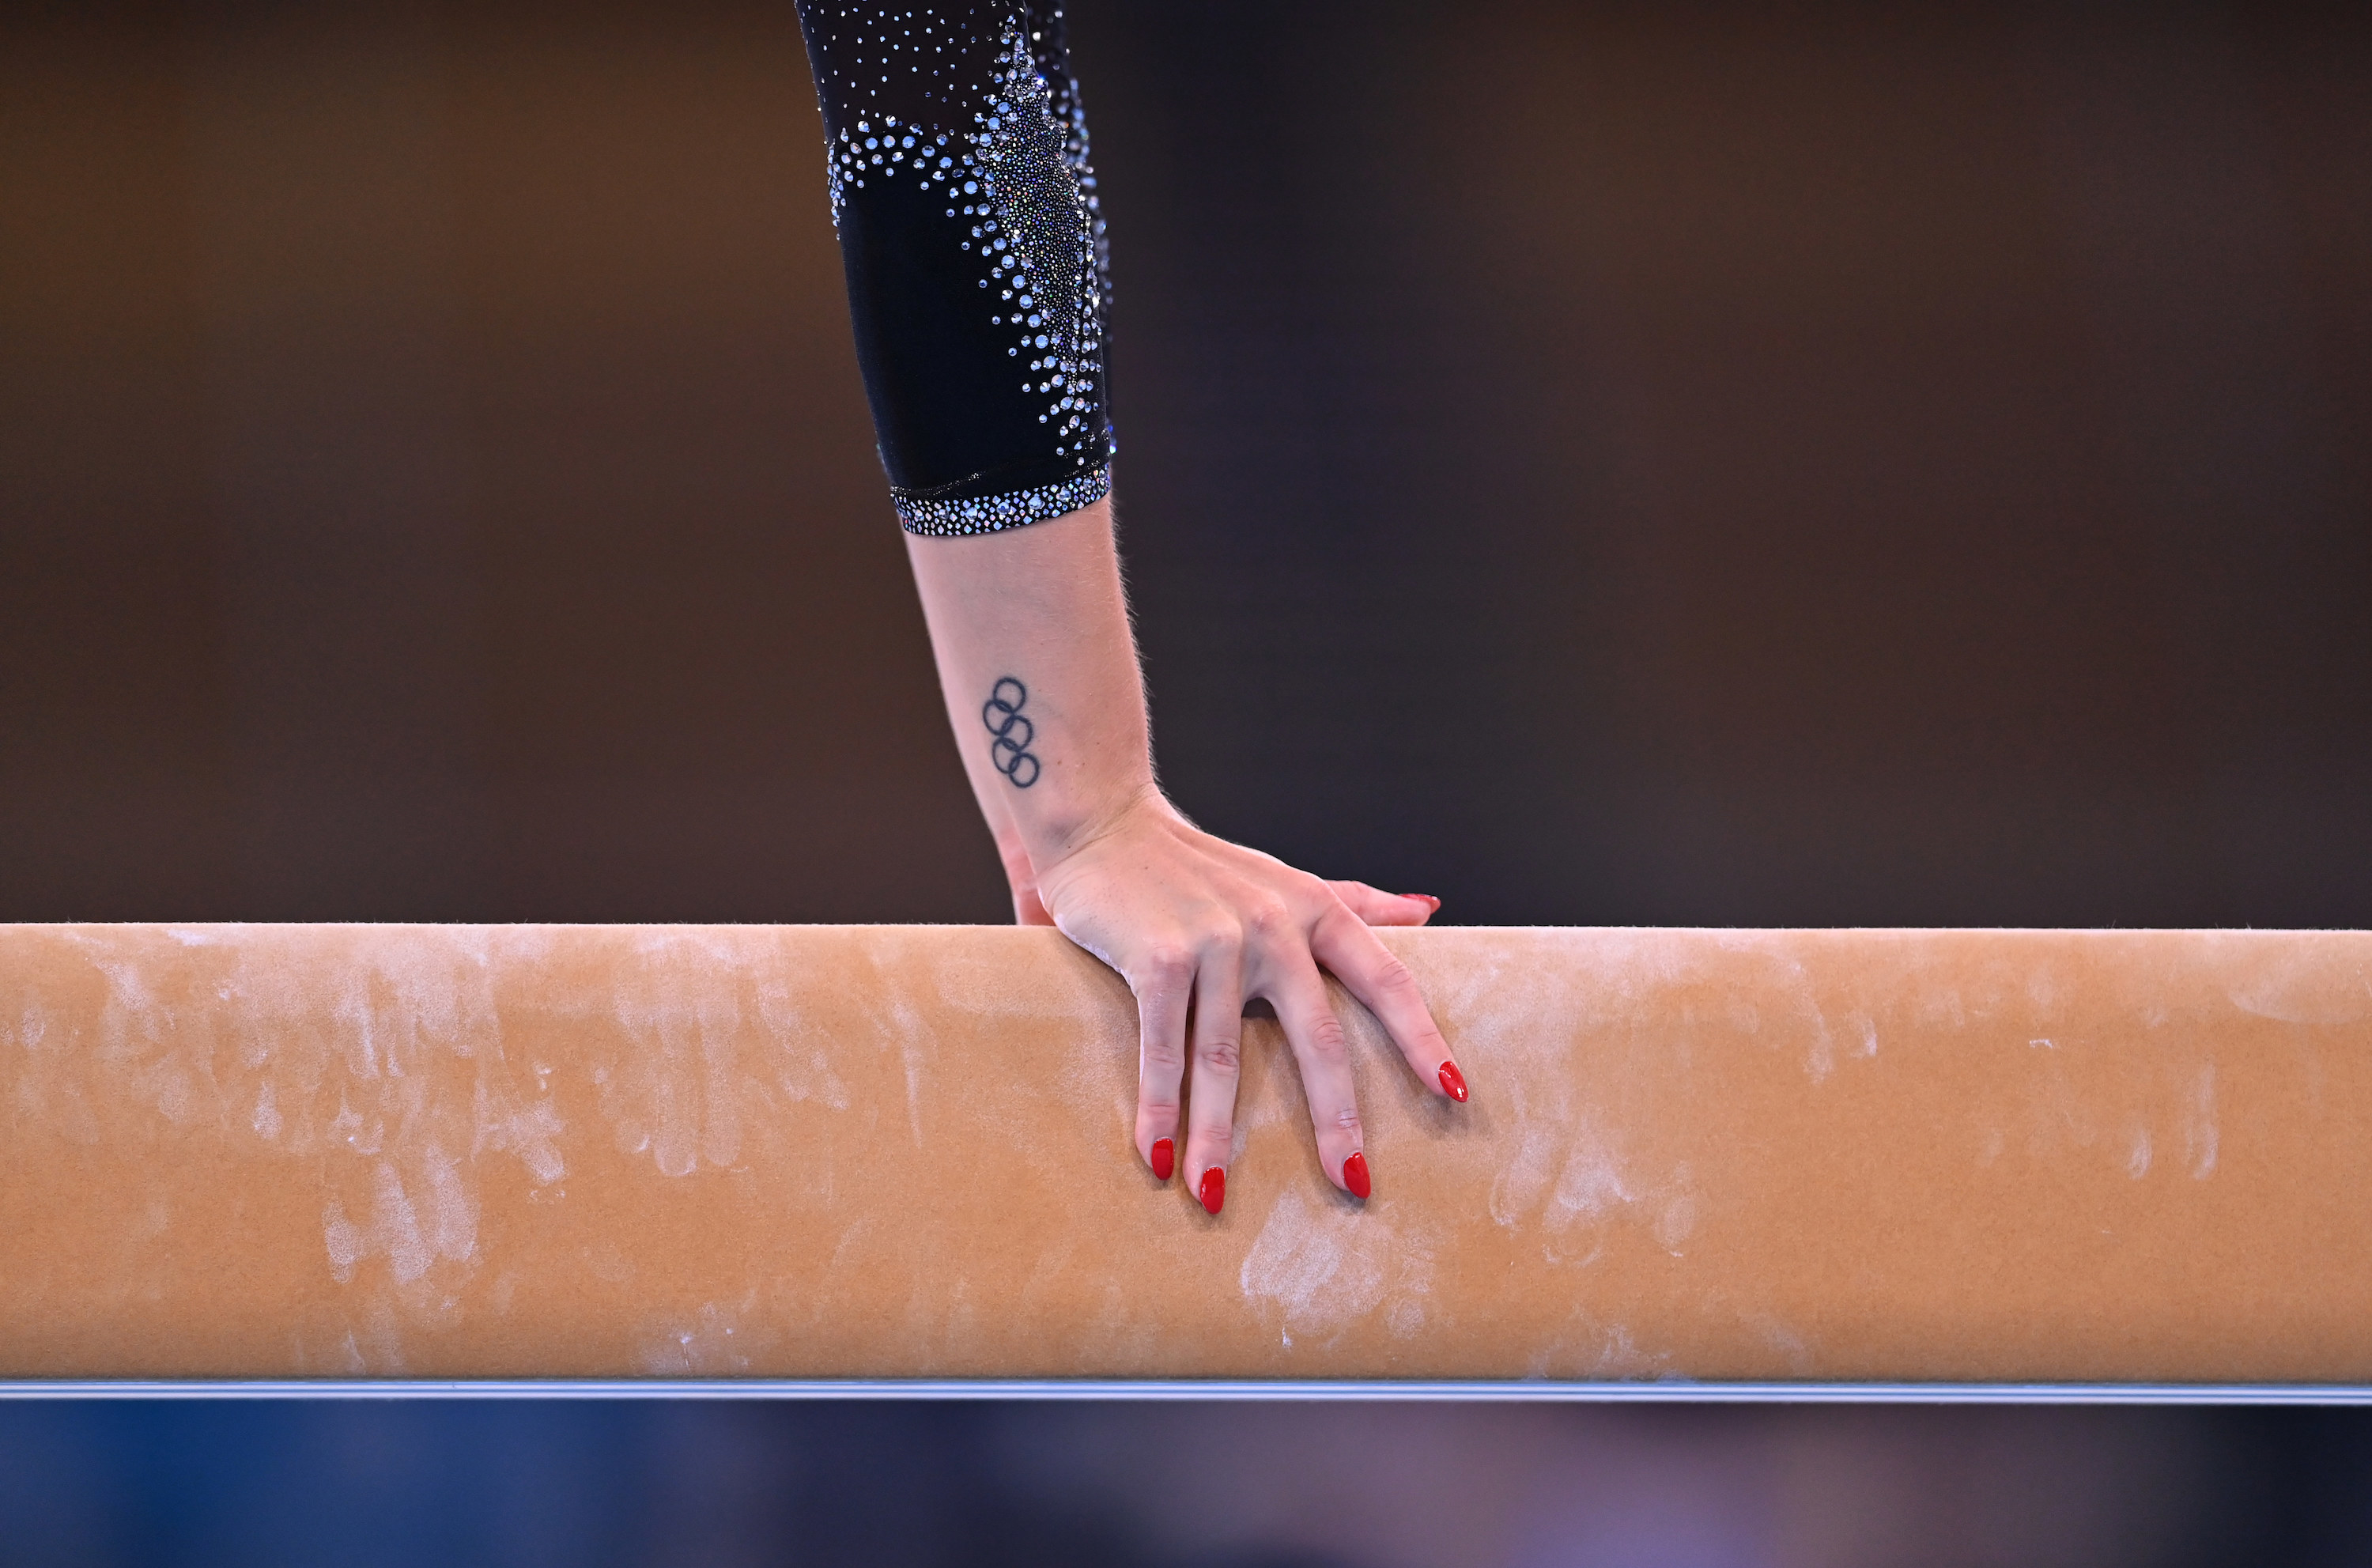 Gymnast's hands on the balance beam with red nails and Olympic rings tattoo